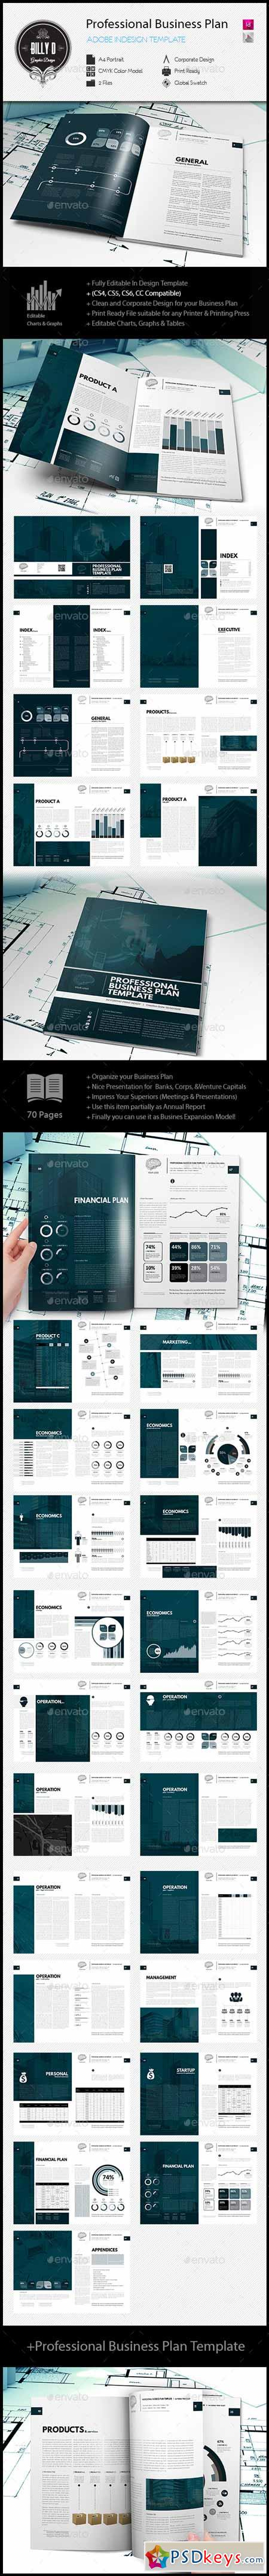 Professional Business Plan Template 10231493